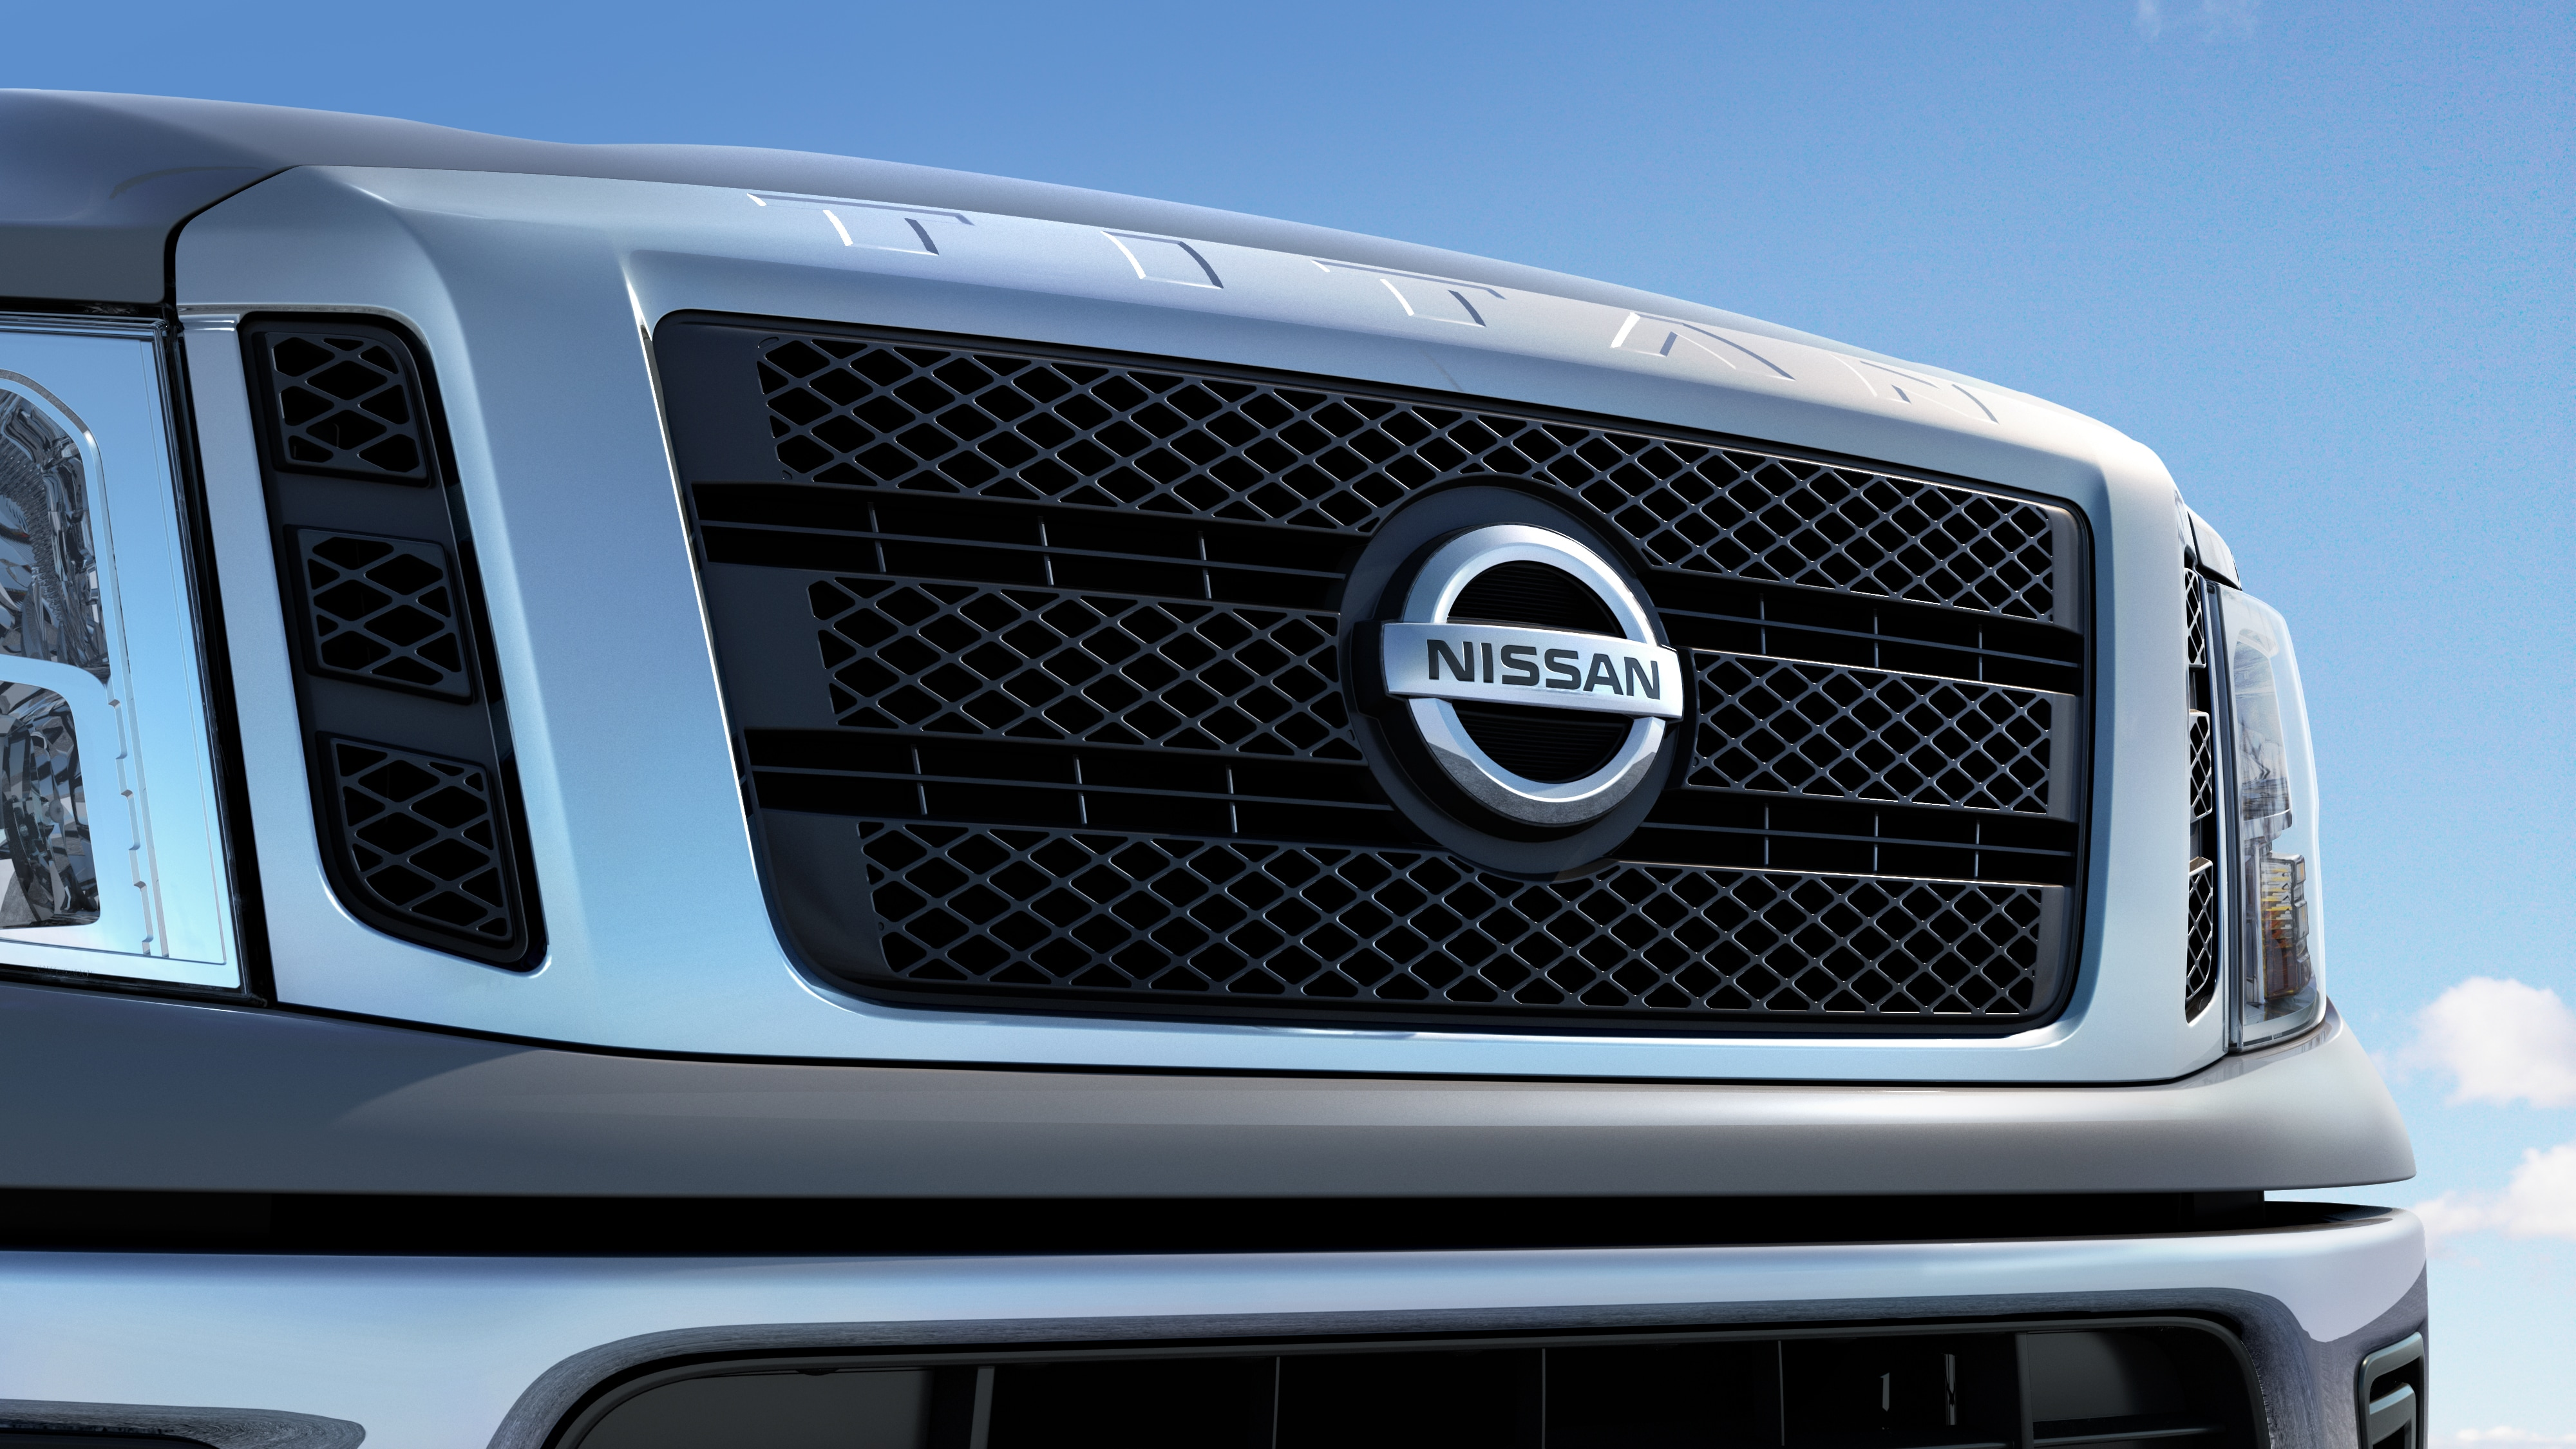 Jenkins Auto Group New Mitsubishi Ford Lincoln Nissan Dealership In Lakeland Fl Get directions, reviews and information for jenkins nissan in lakeland, fl. jenkins auto group new mitsubishi